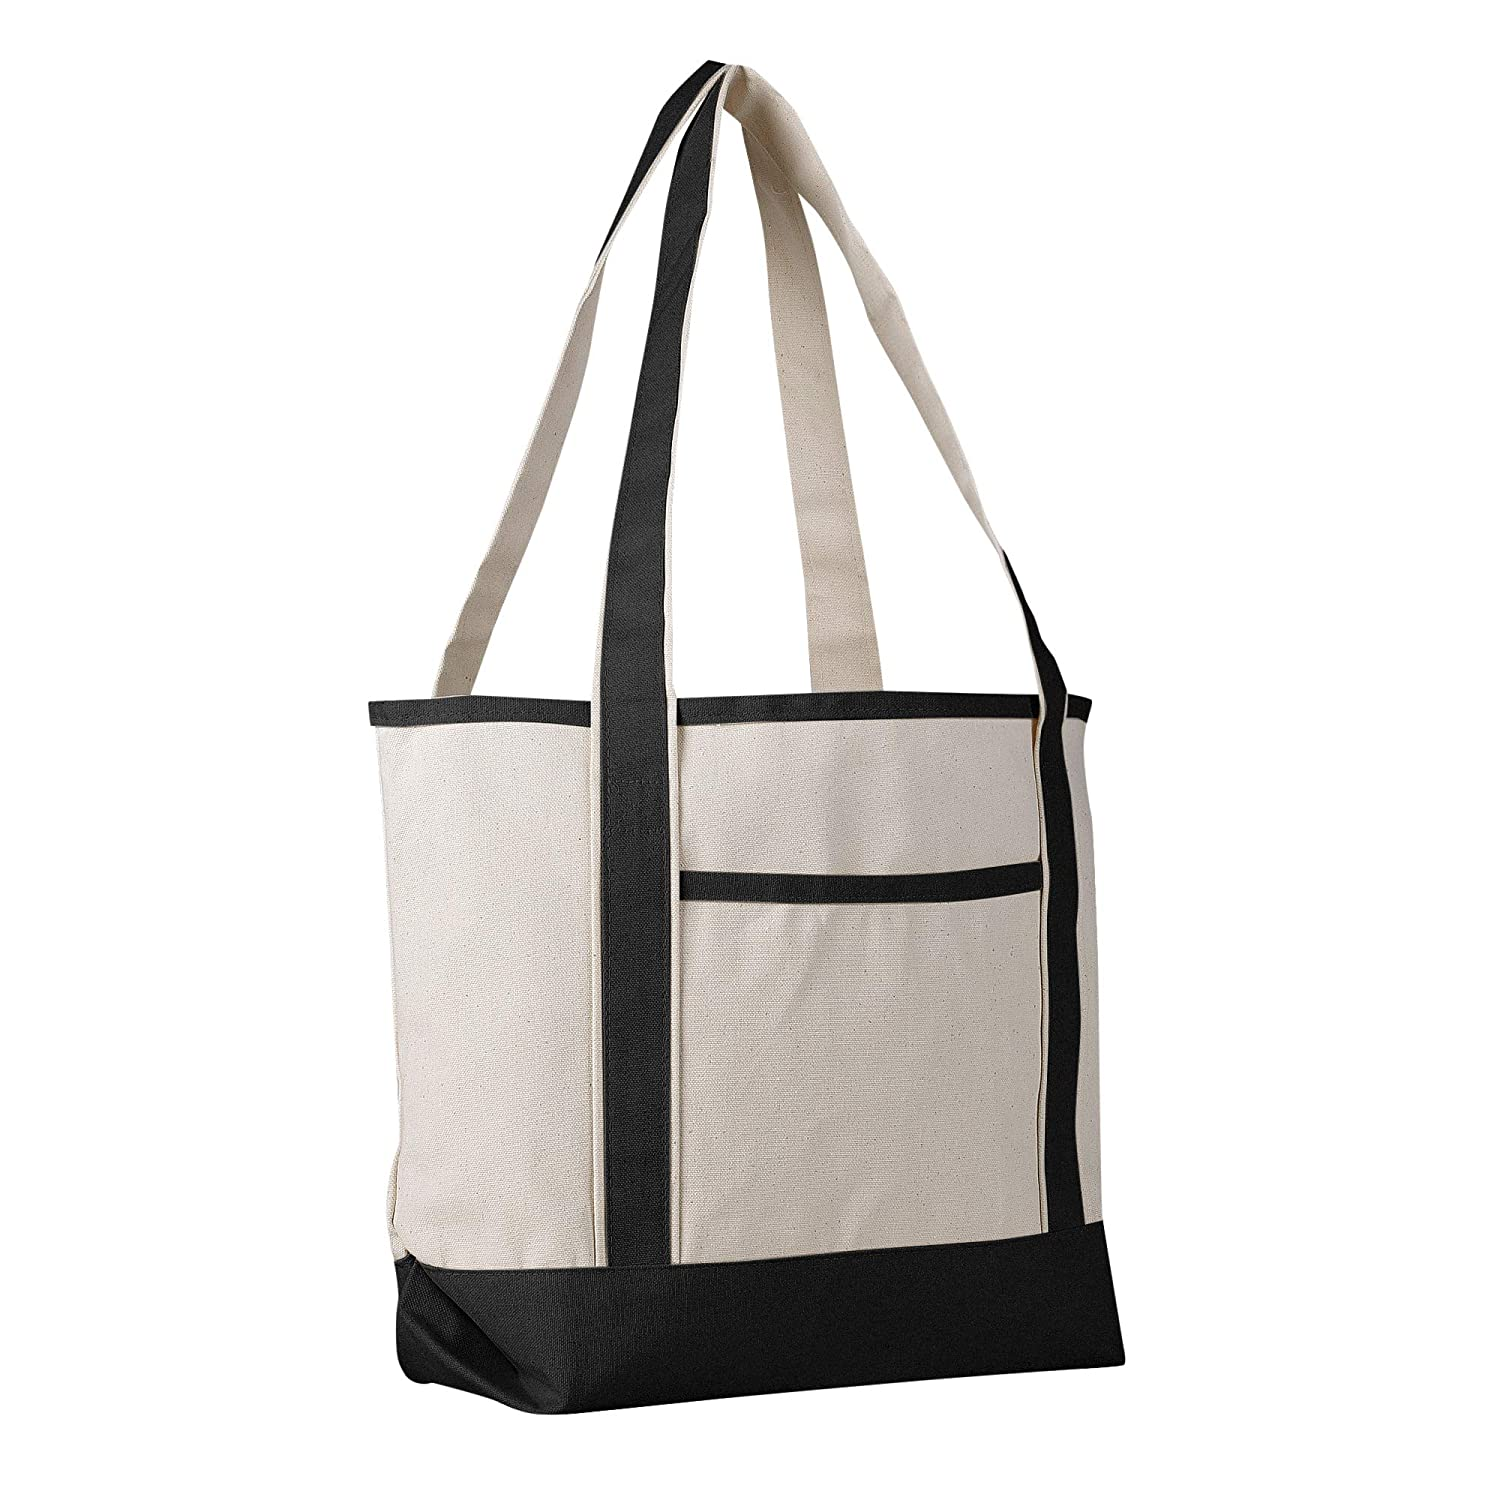 9841ea2652abfd Canvas Boat Tote Bag - 18 inch - Wide Heavy Duty Sturdy & Reusable with  Inside Zipper Pocket Cotton Canvas Beach Weekender Travel Luggage Totes for  Women, ...